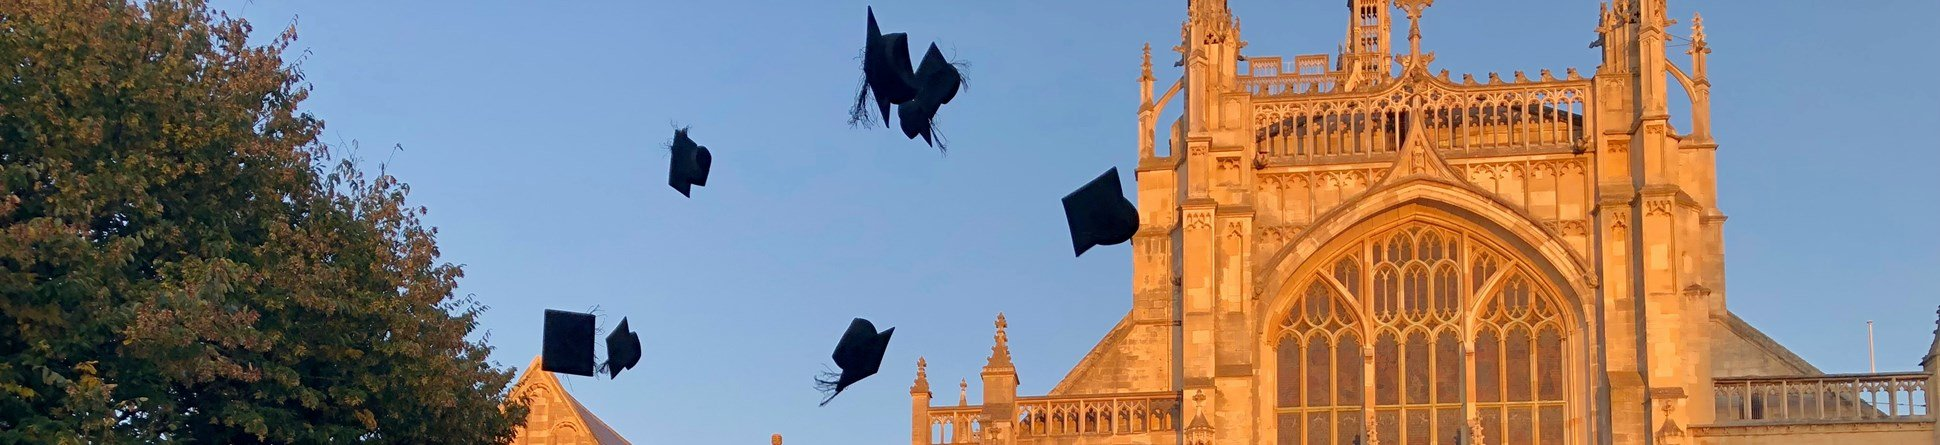 A group wearing graduation gowns throw their mortar boards in the air to celebrate. Behind them, light from the setting sun turns Gloucester Cathedral orange against a blue sky.